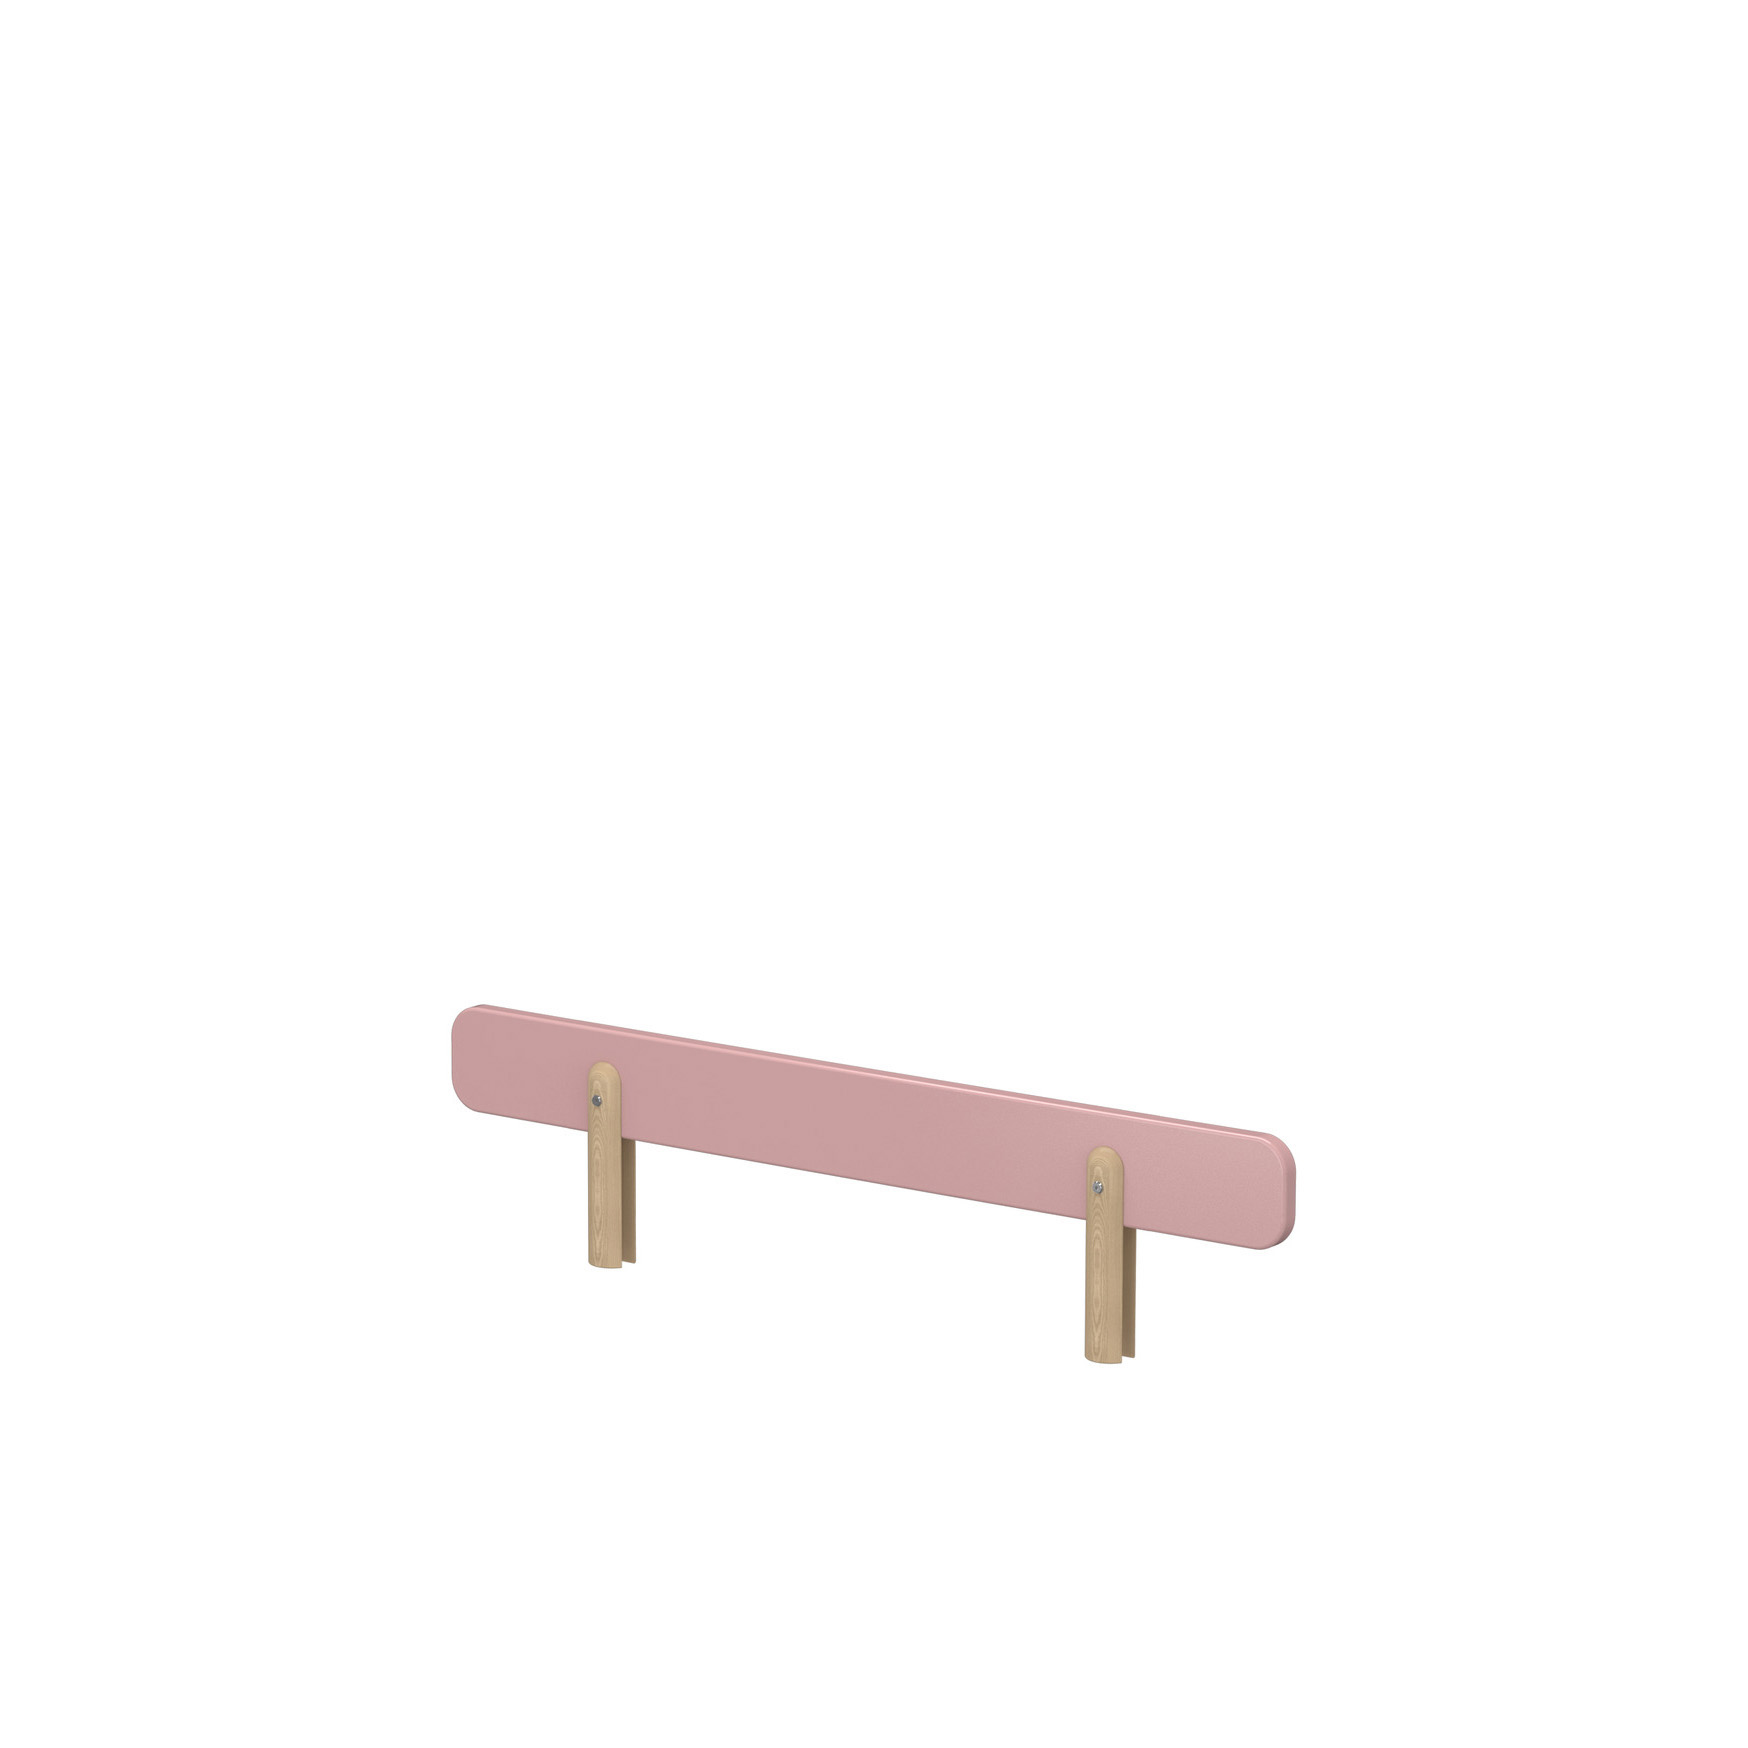 Flexa Play - Single Bed Safety Rail - Rose at FADS.co.uk